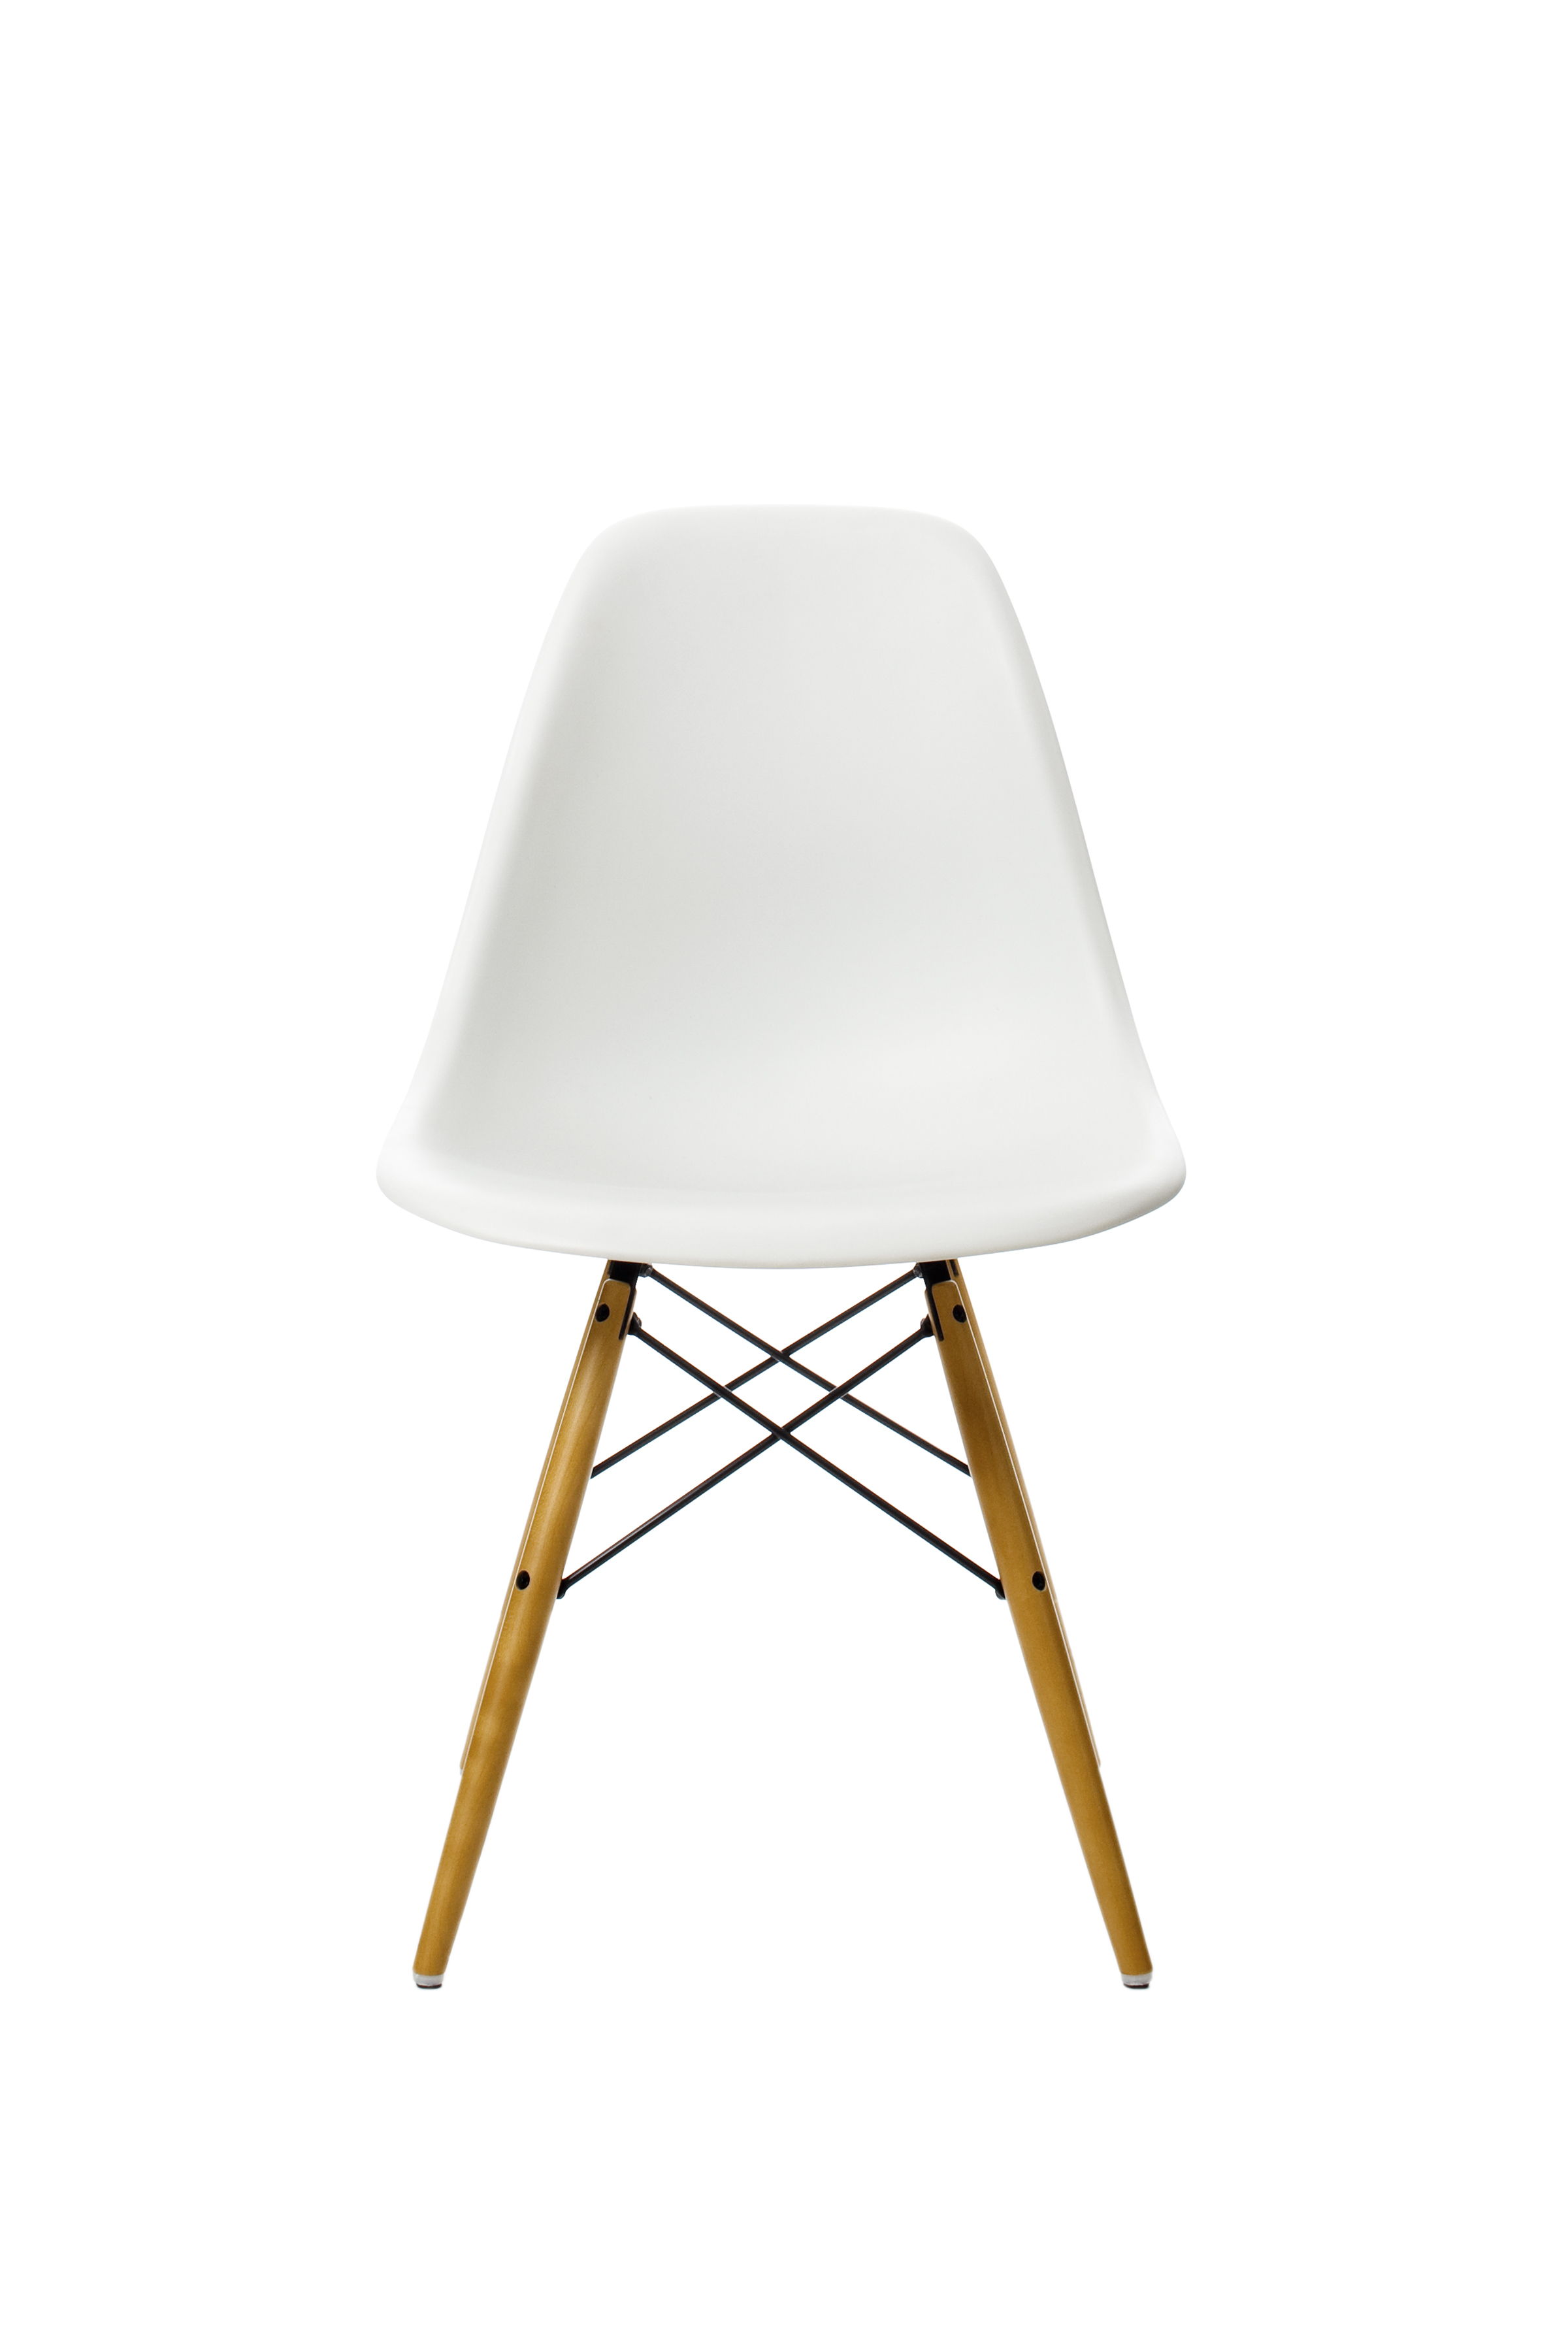 DSW chair, by Charles & Ray Eames